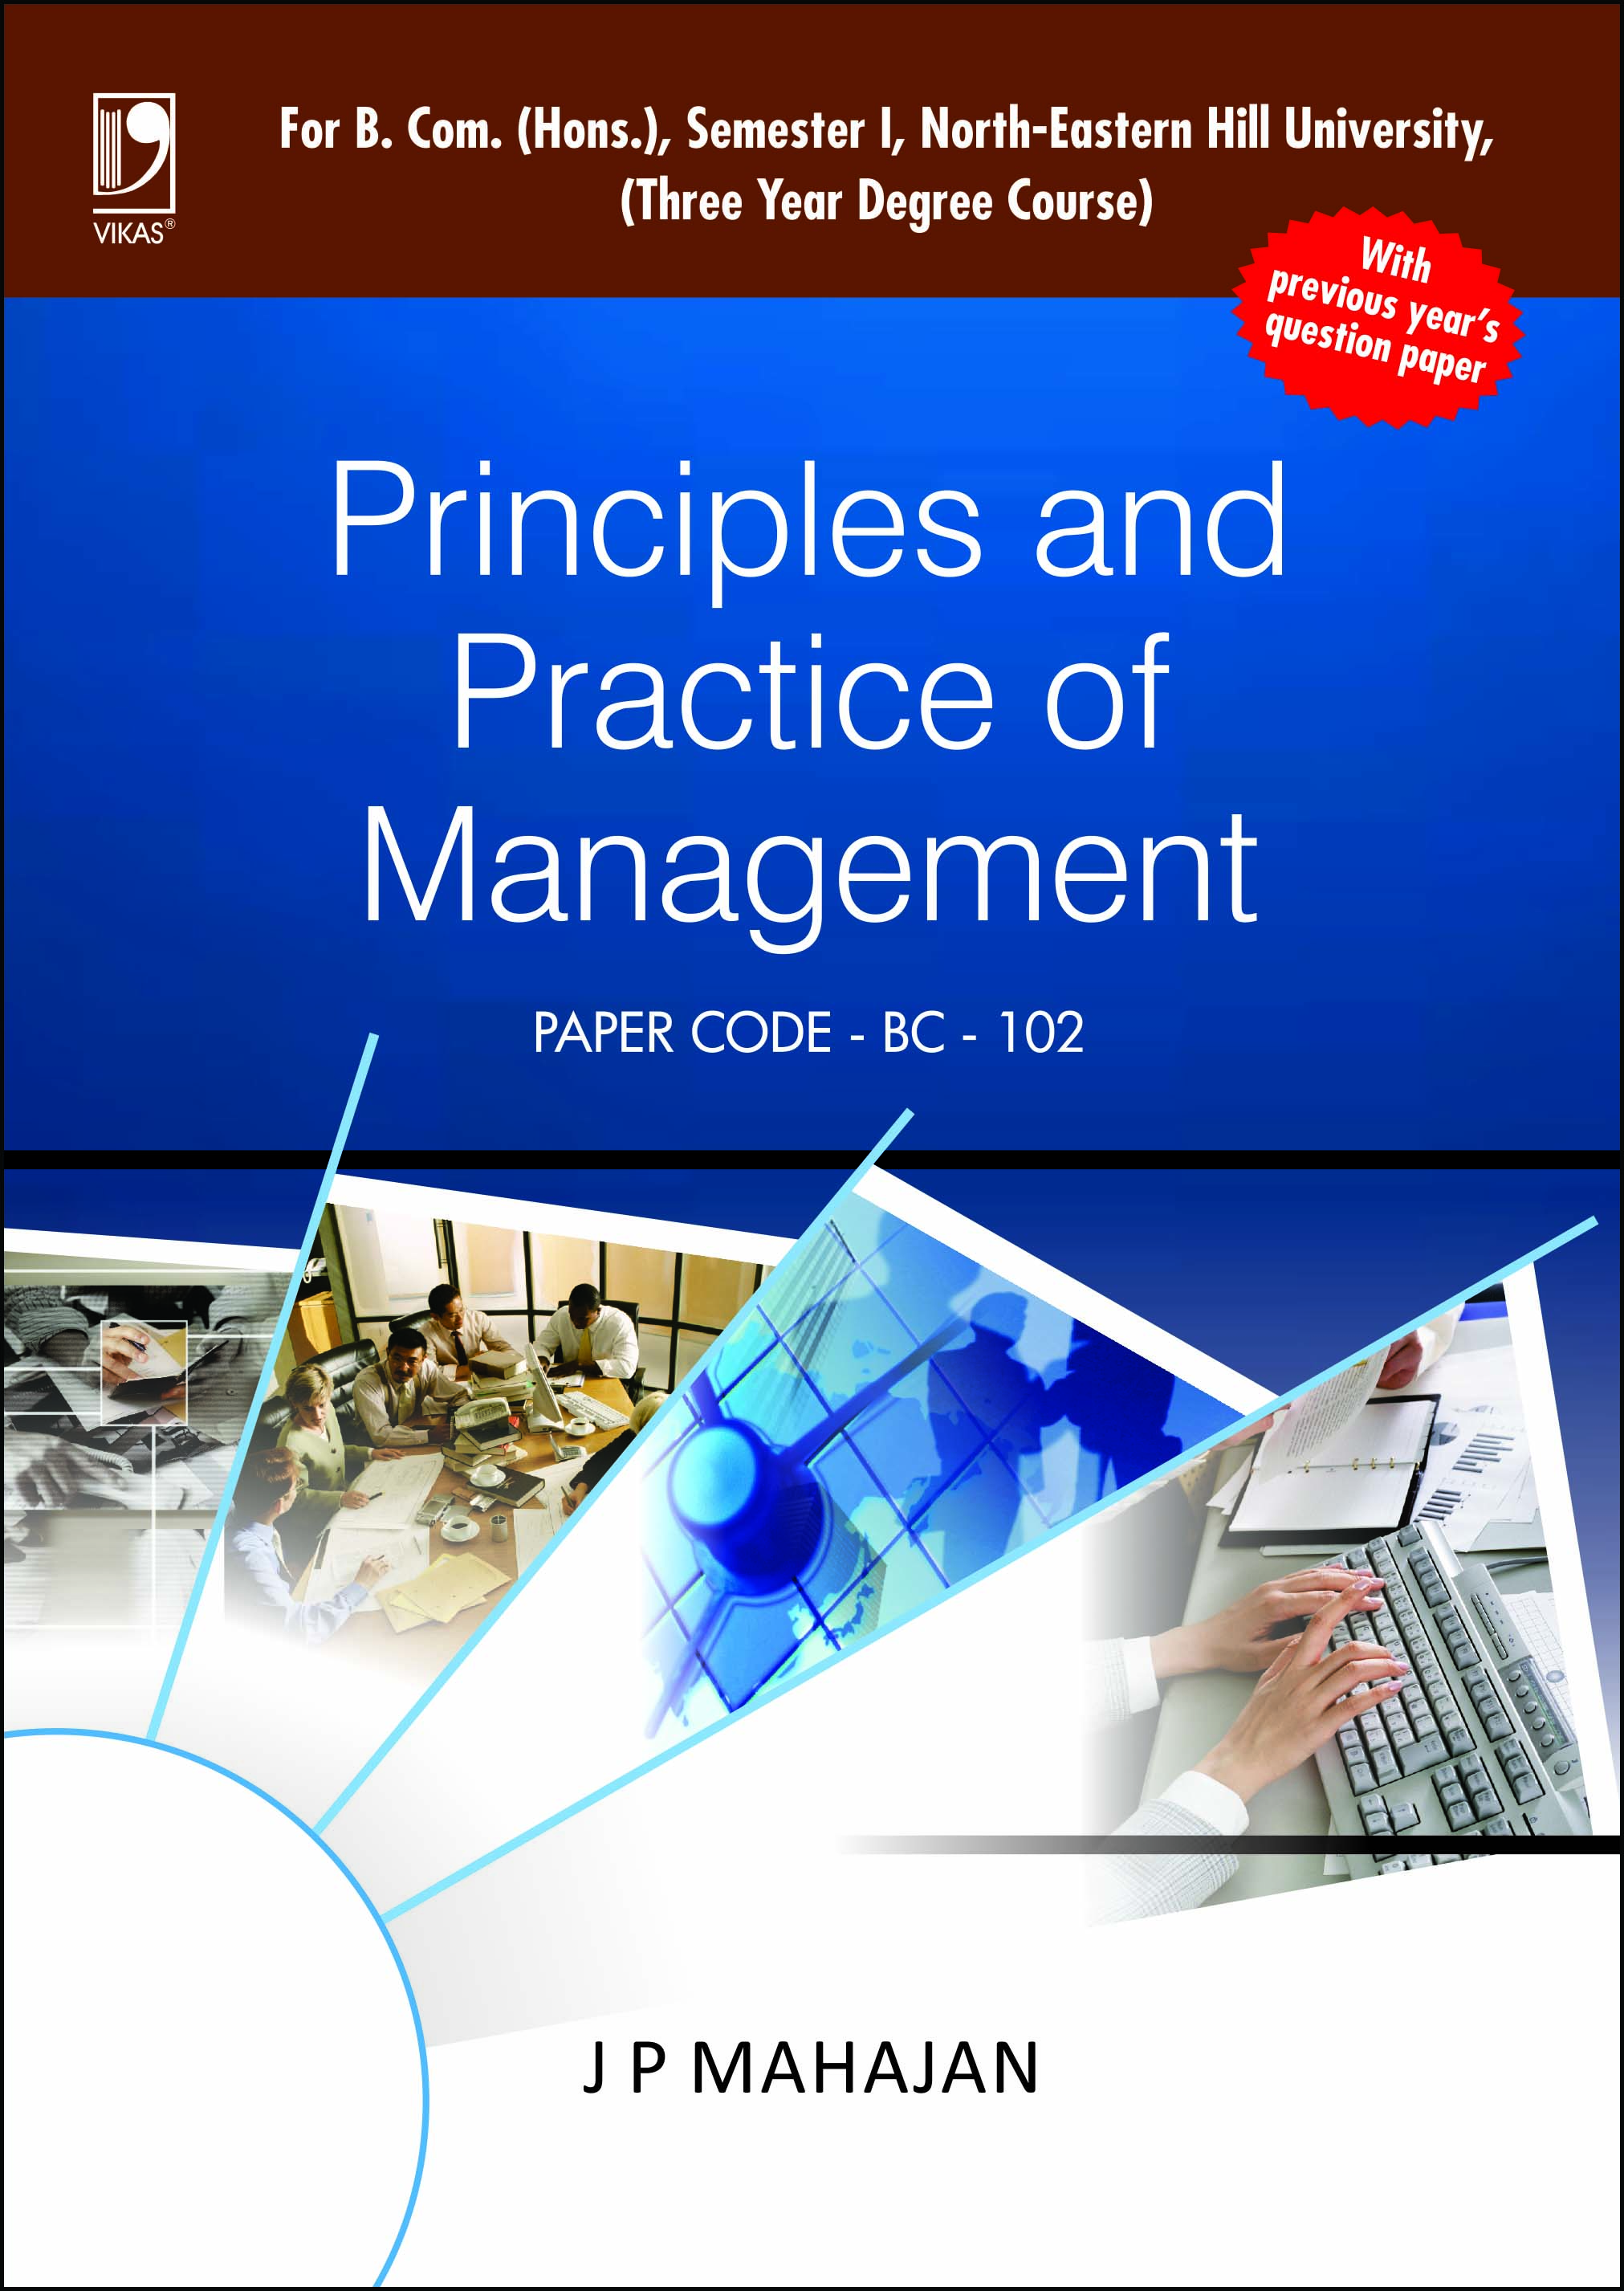 PRINCIPLES AND PRACTICE OF MANAGEMENT: (FOR NORTH-EASTERN HILL UNIVERSITY) by  J P Mahajan